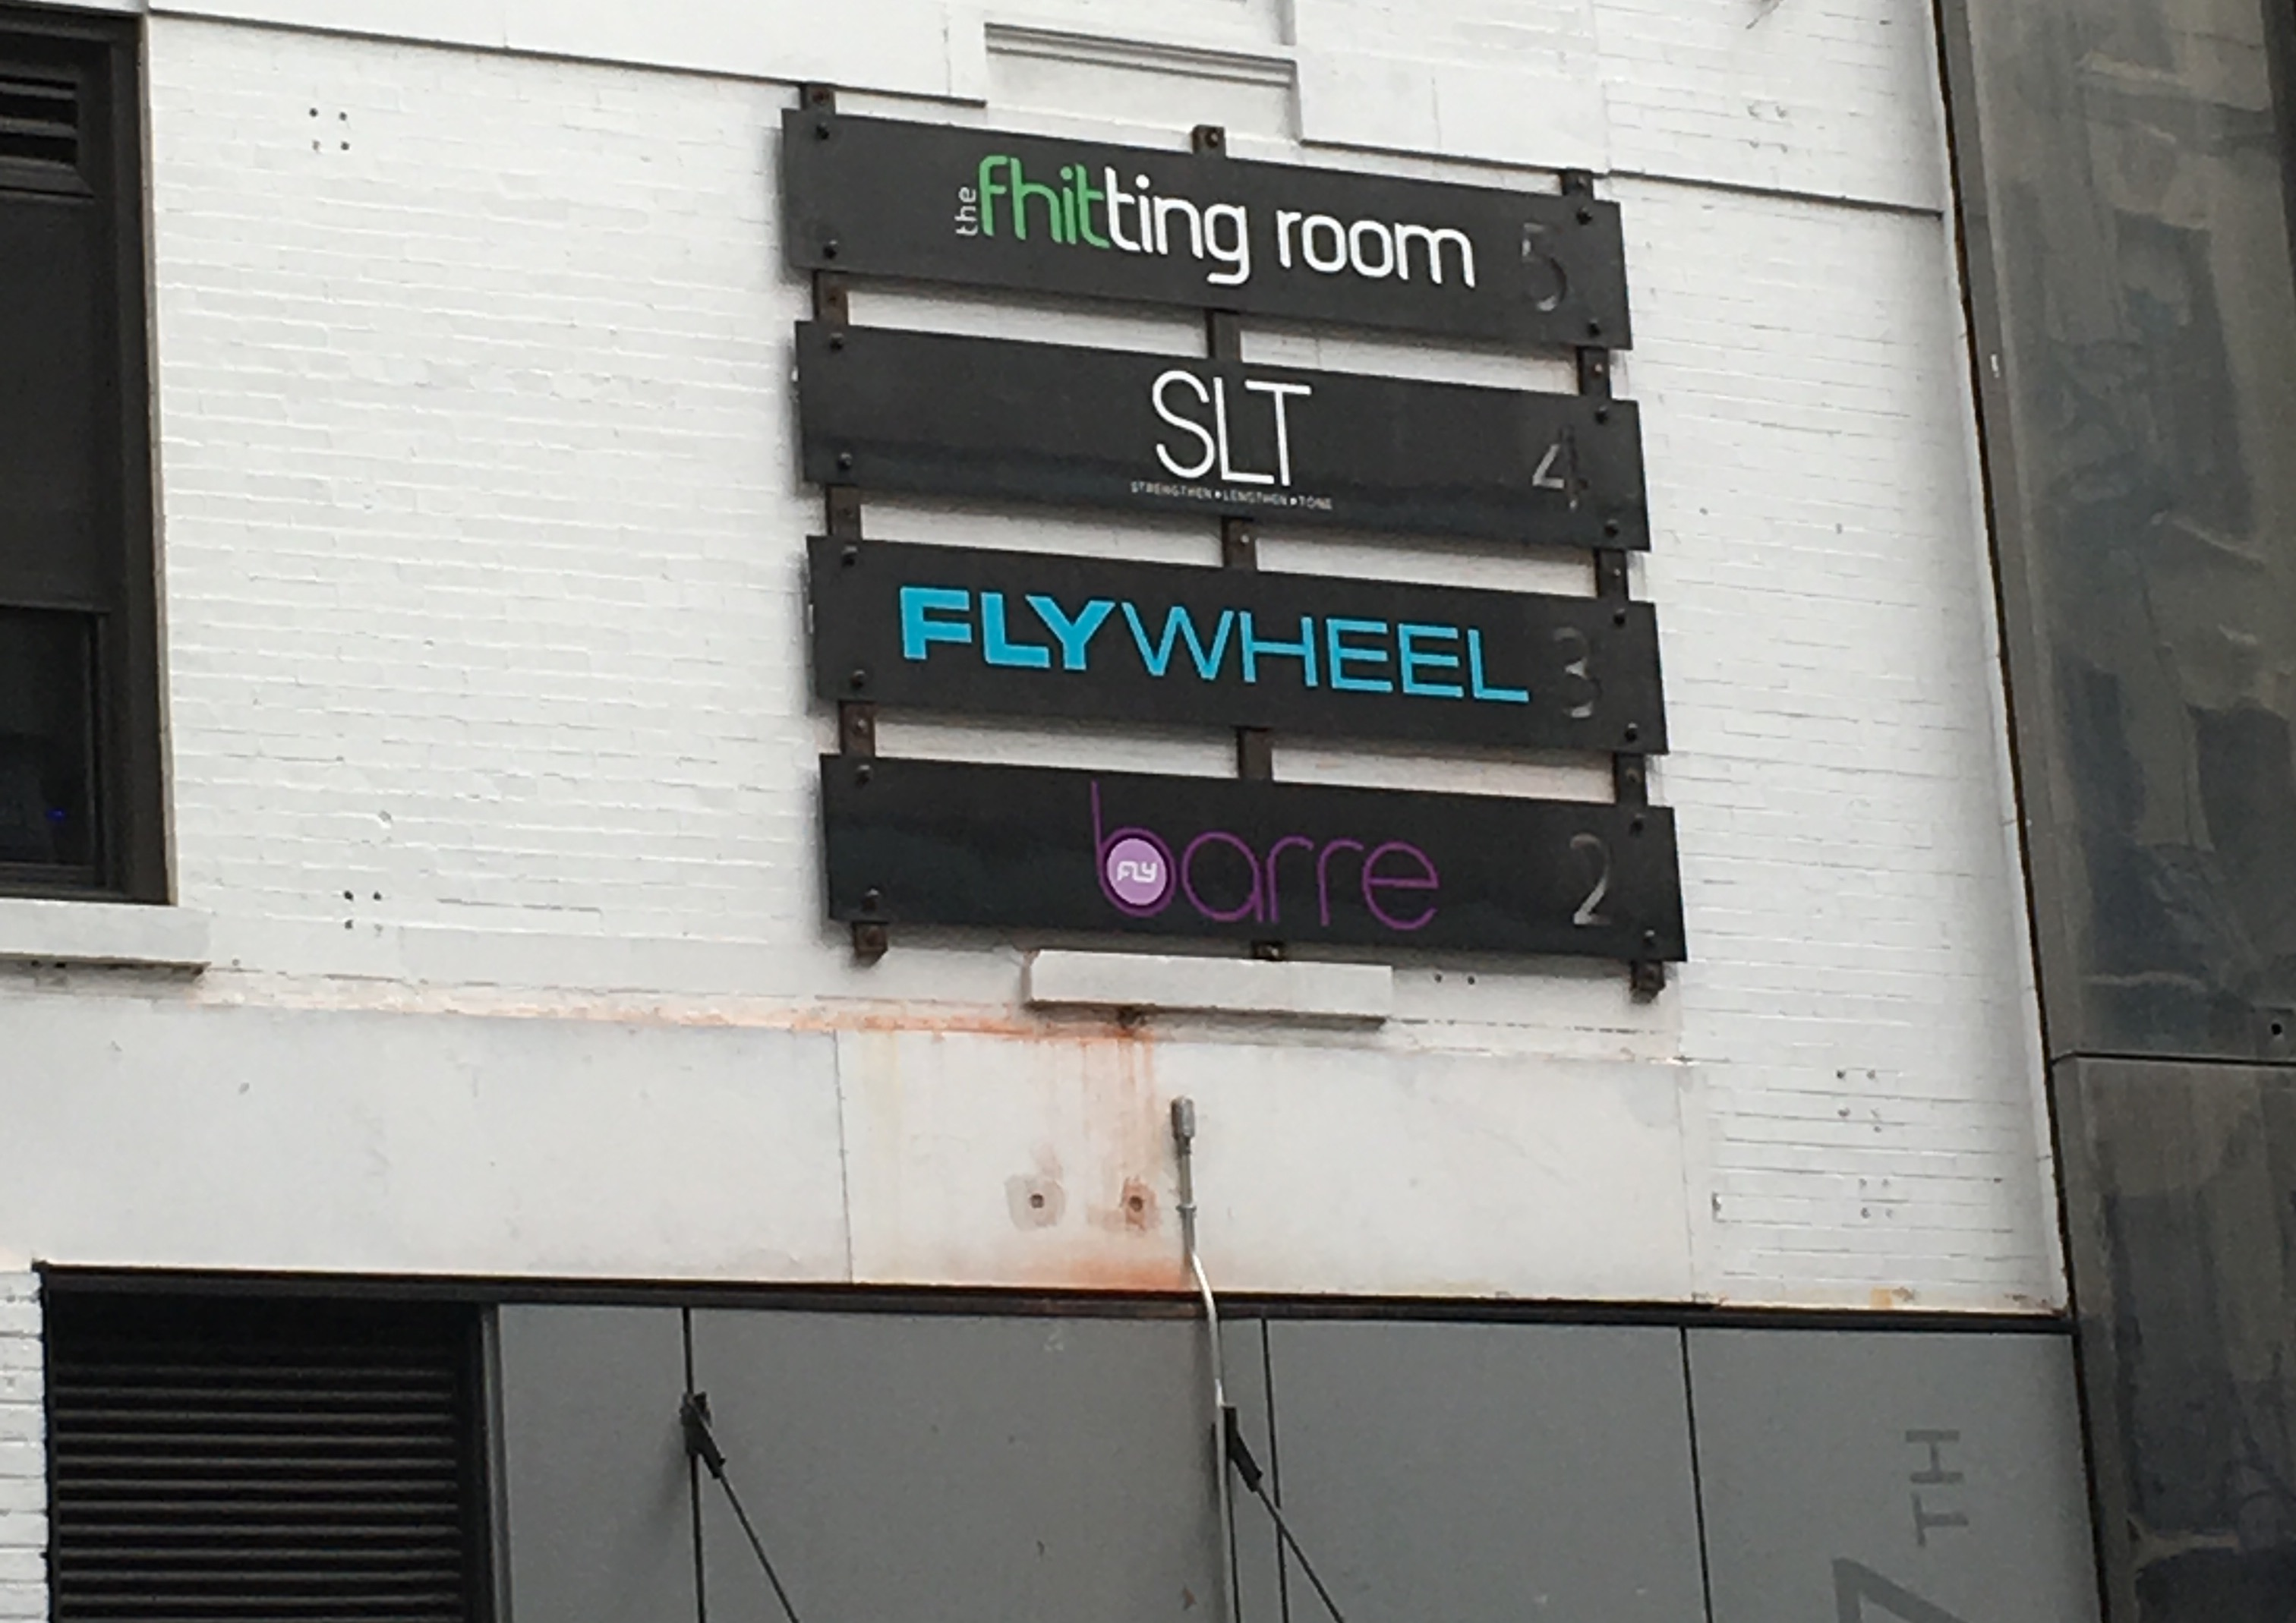 slt flywheel fhitting room